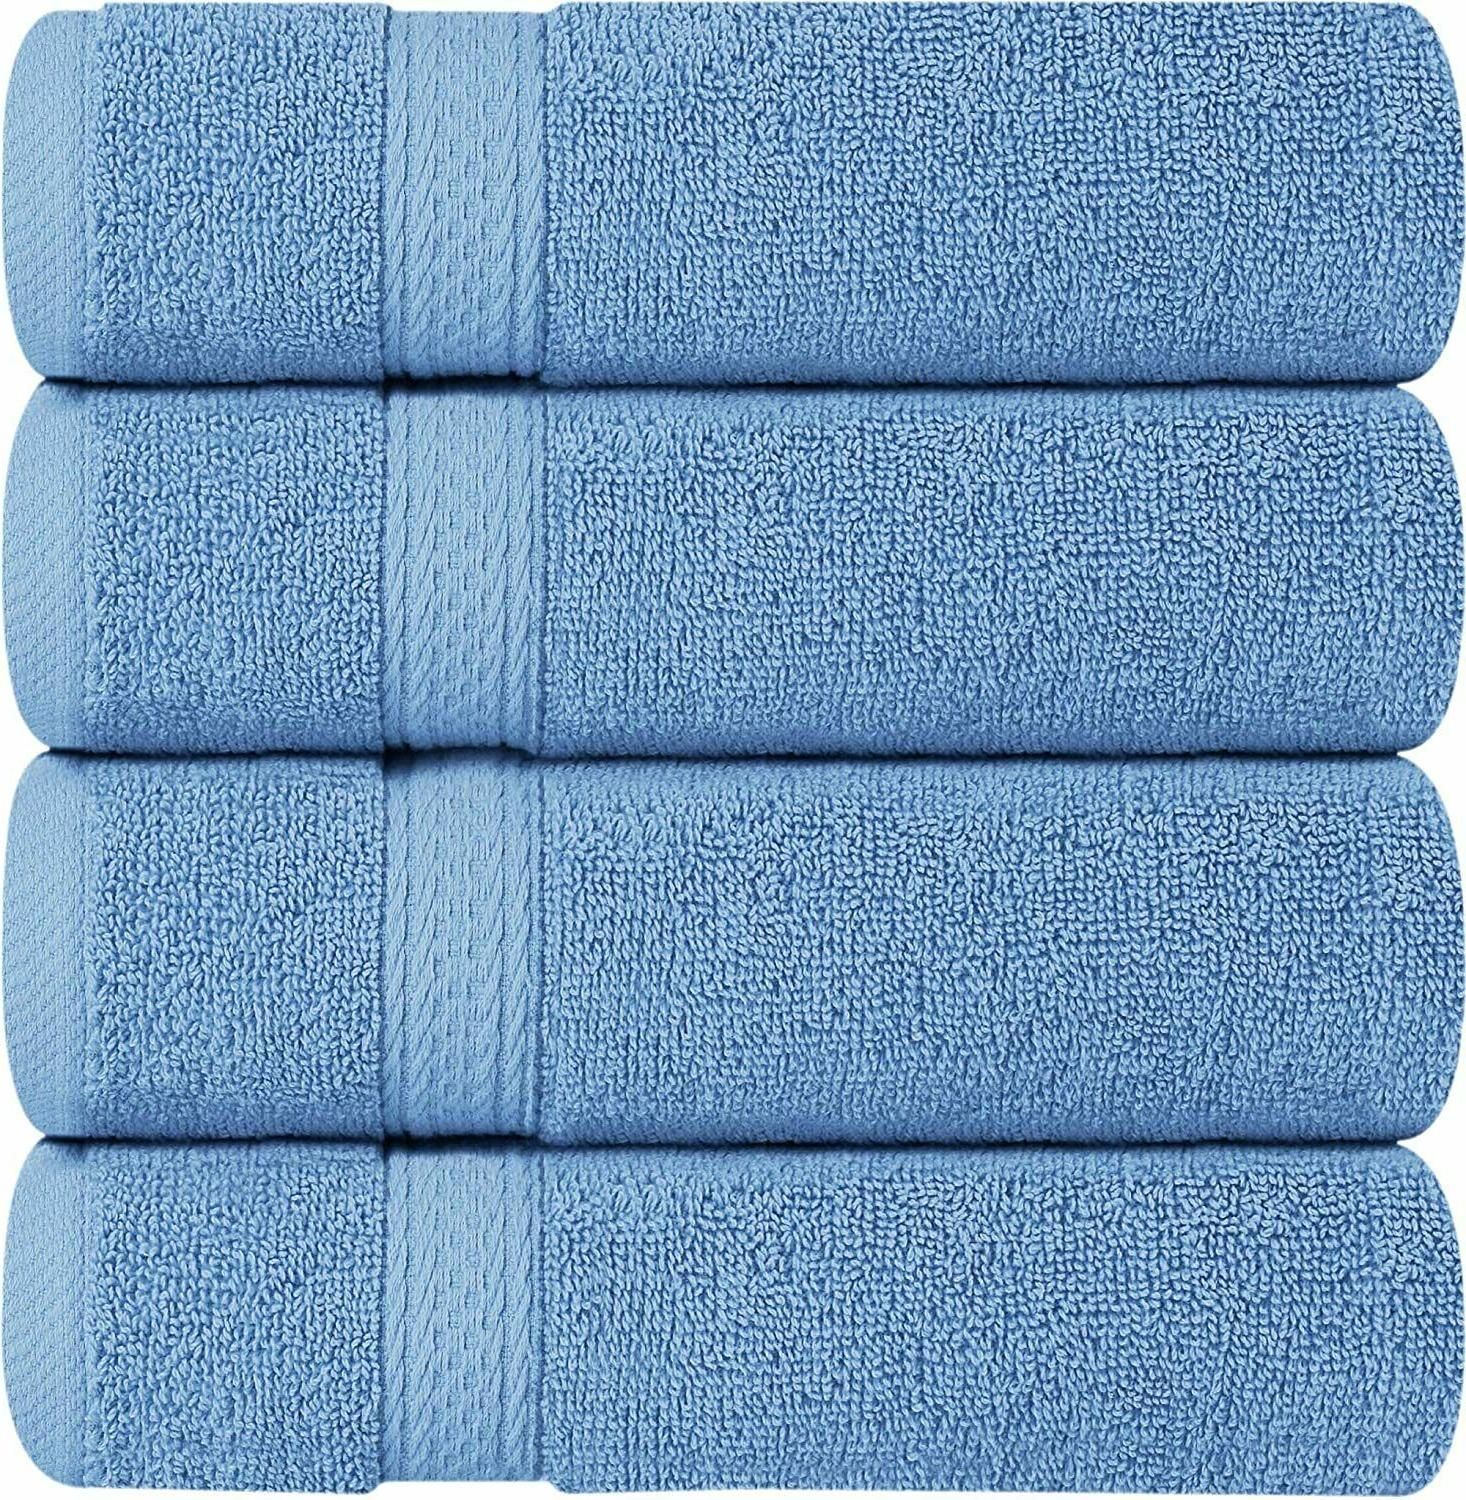 Pack of 6 Premium Cotton 16 x 28 Inches GSM Towels